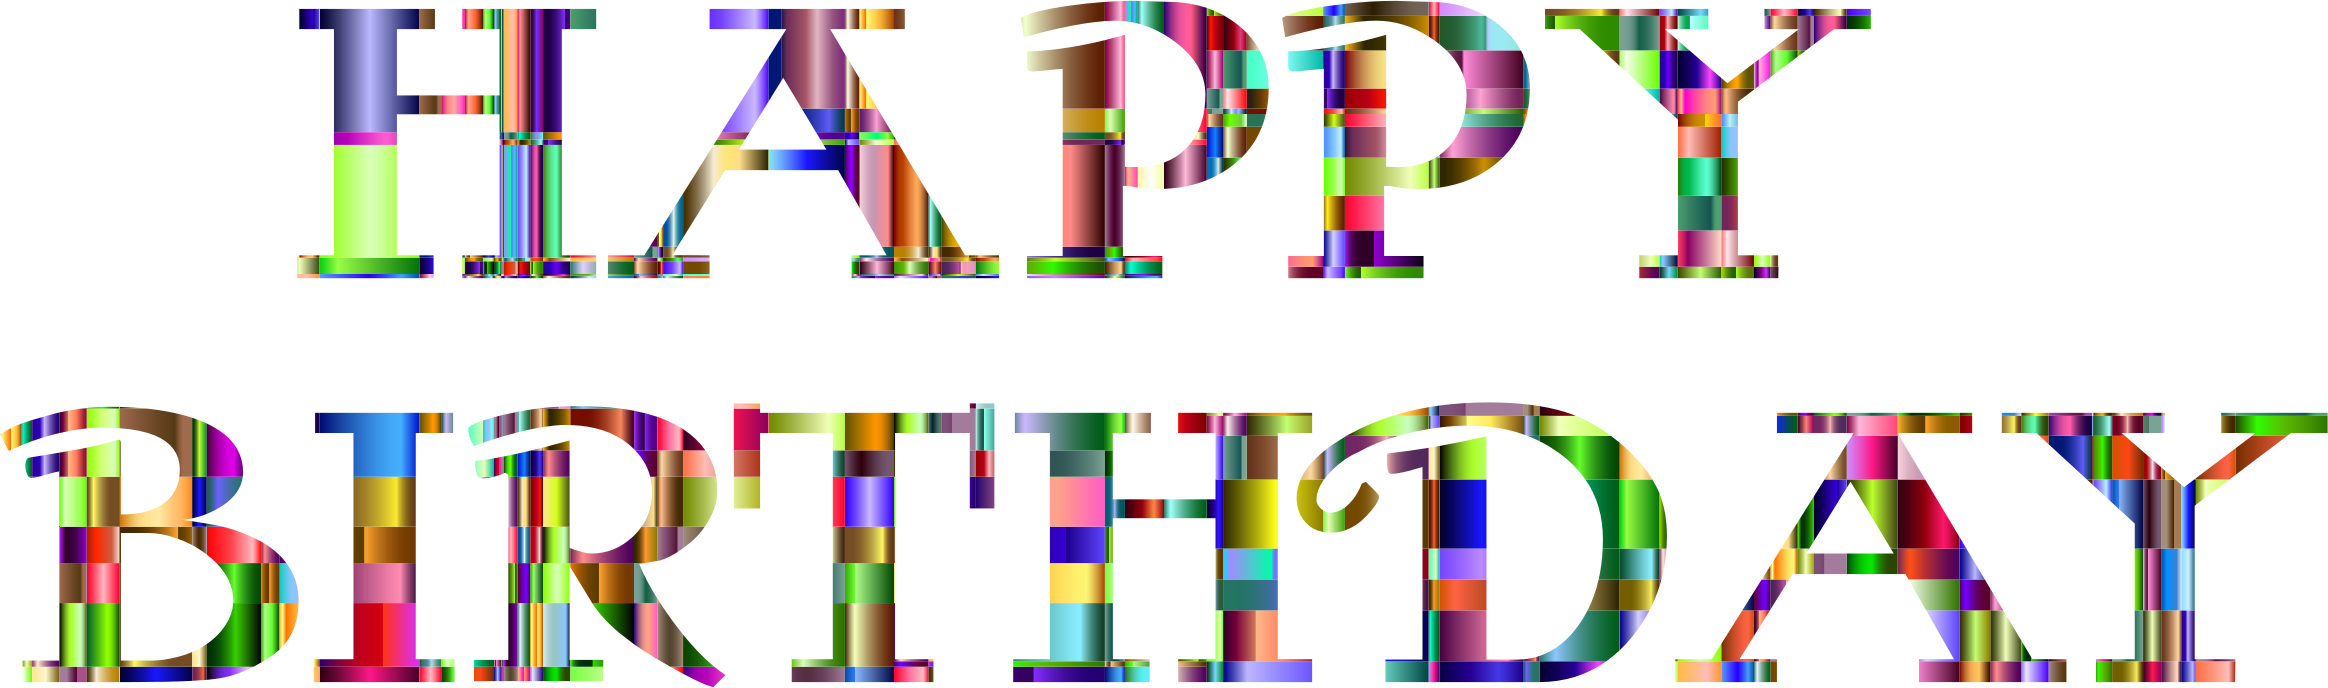 Checkered Chromatic Happy Birthday Typography by GDJ